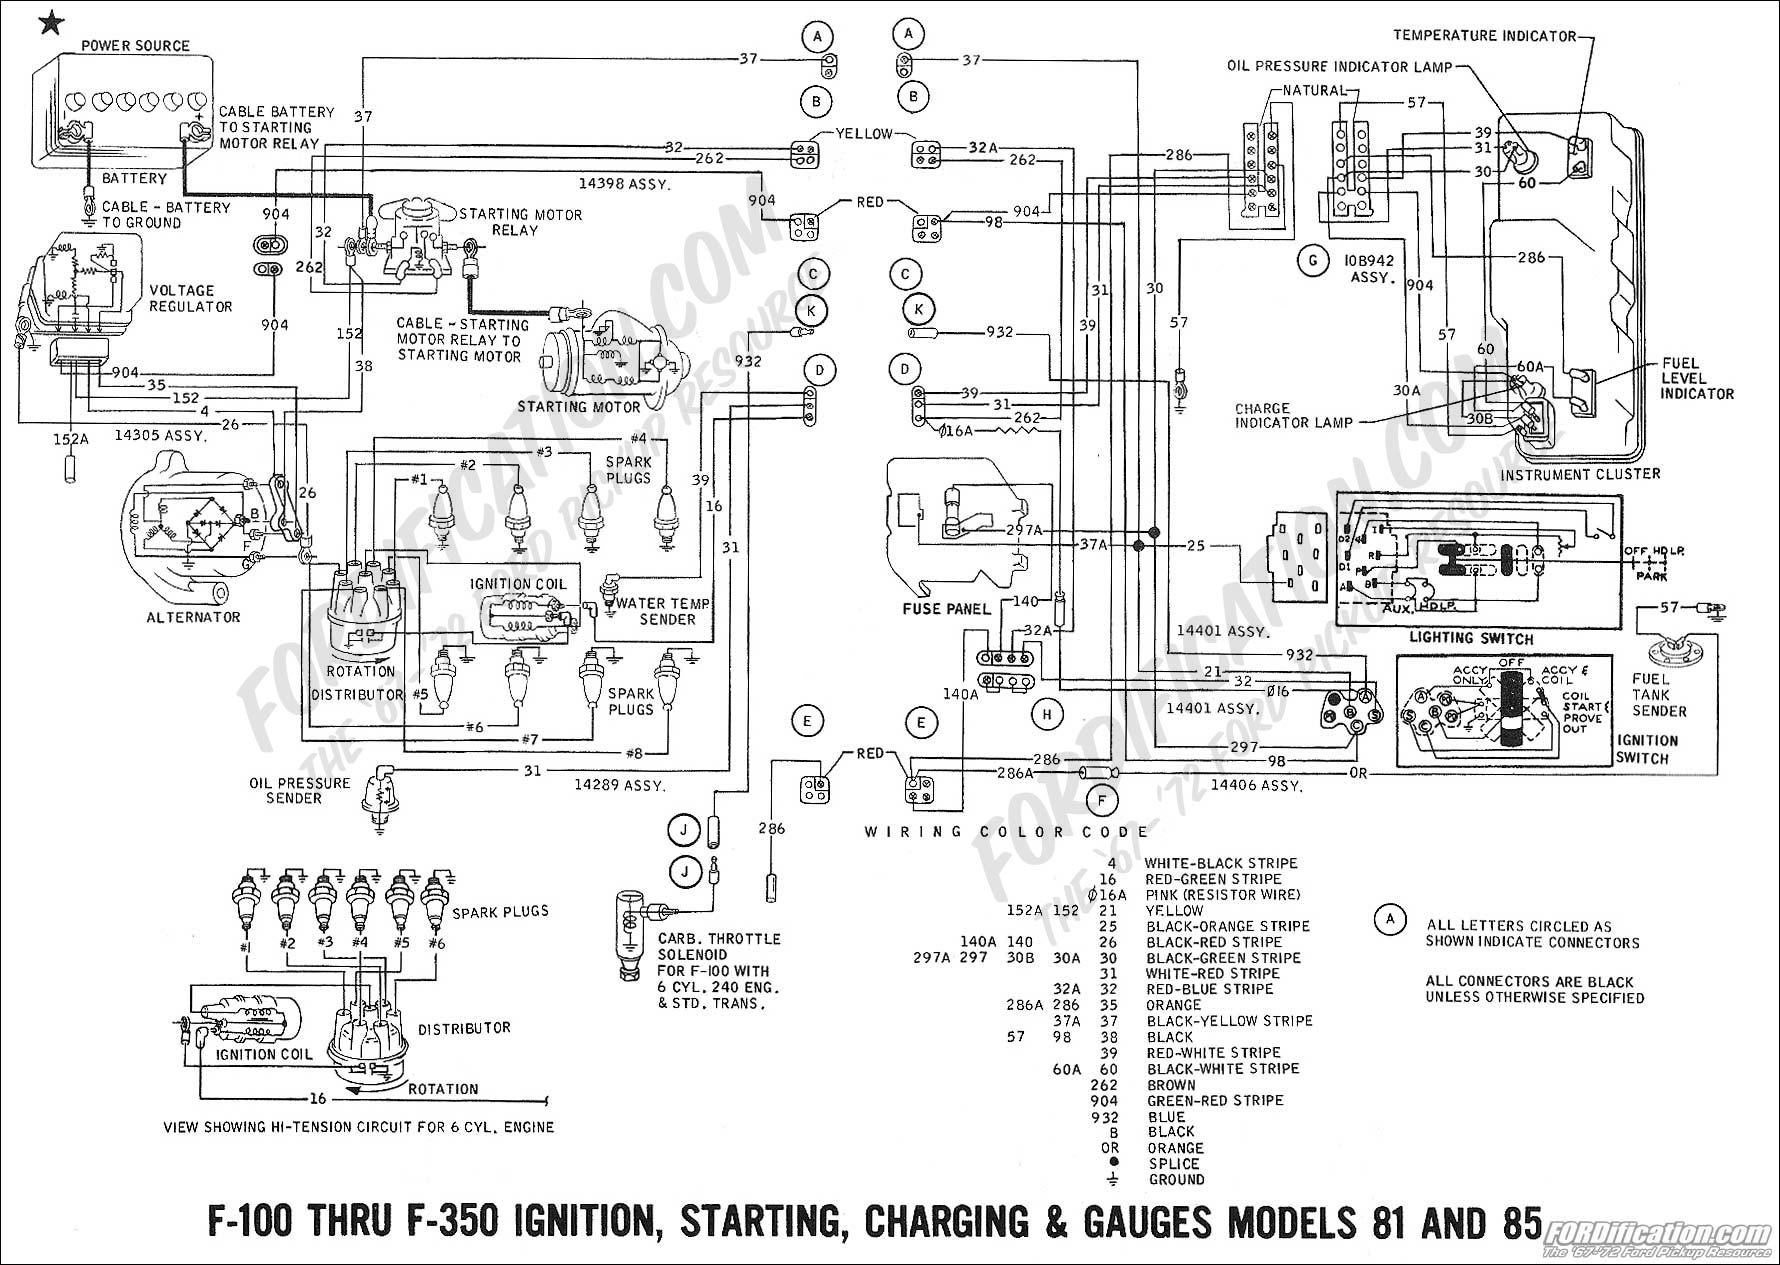 wiring 1969charging2?qualityd806stripdall ford e350 wiring diagram efcaviation com 2006 ford e350 fuse box diagram at edmiracle.co